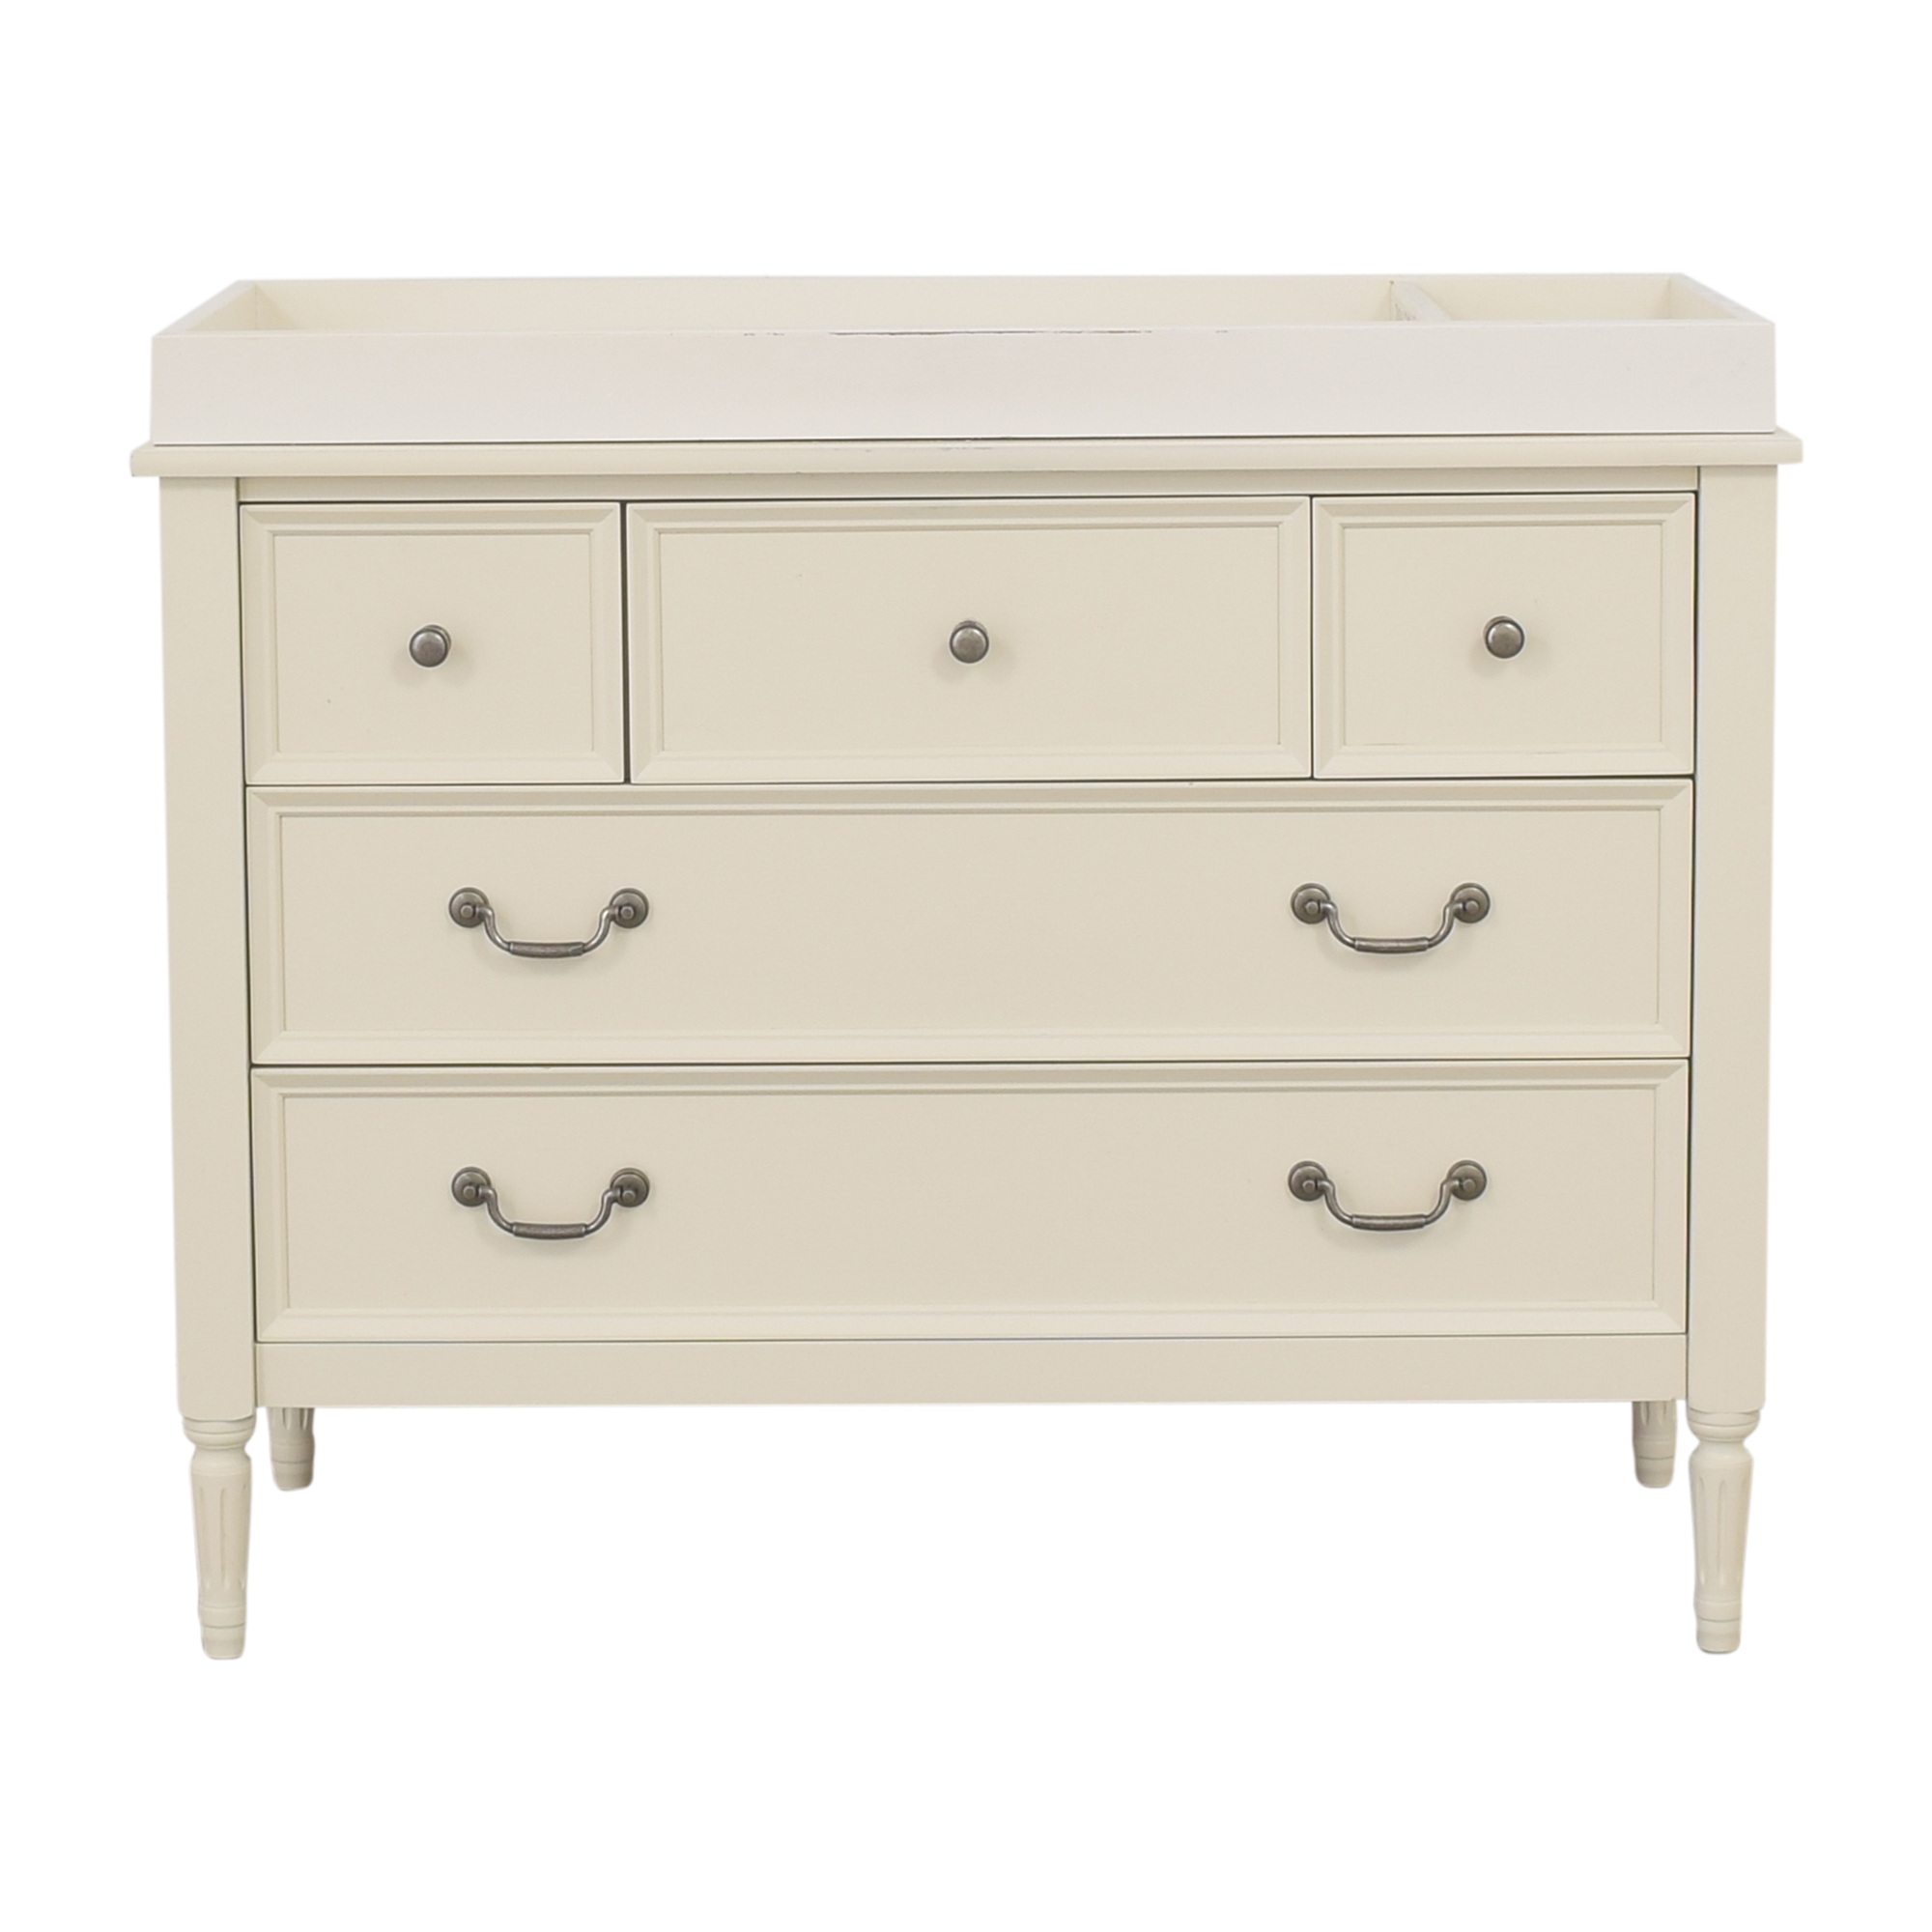 Pottery Barn Kids Pottery Barn Kids Five Drawer Dresser pa